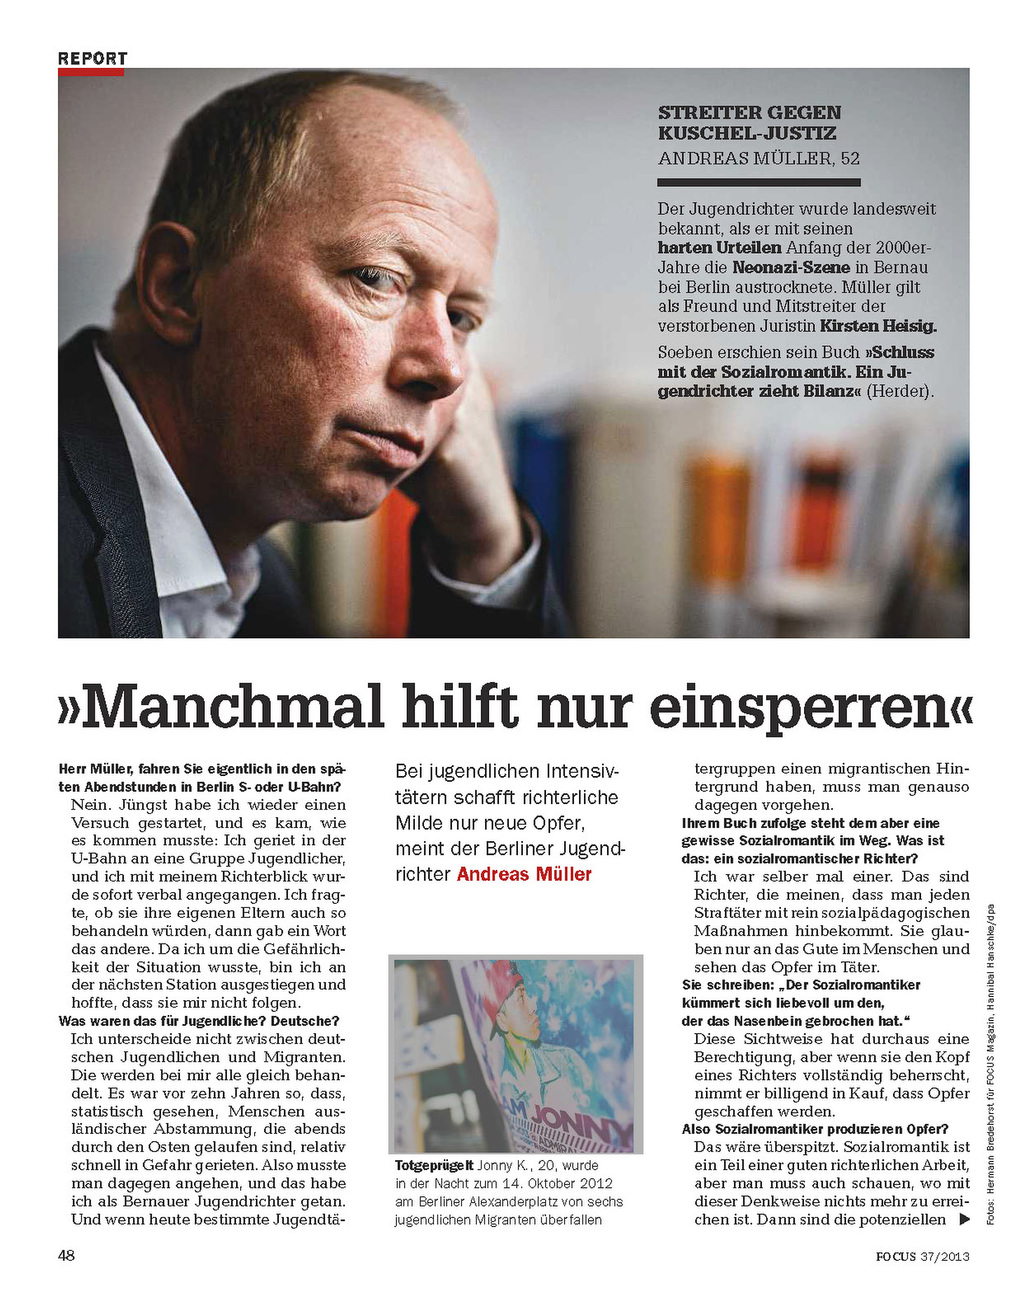 Focus Magazine, Germany, 09/2013, Andreas Mueller, juvenile court judge